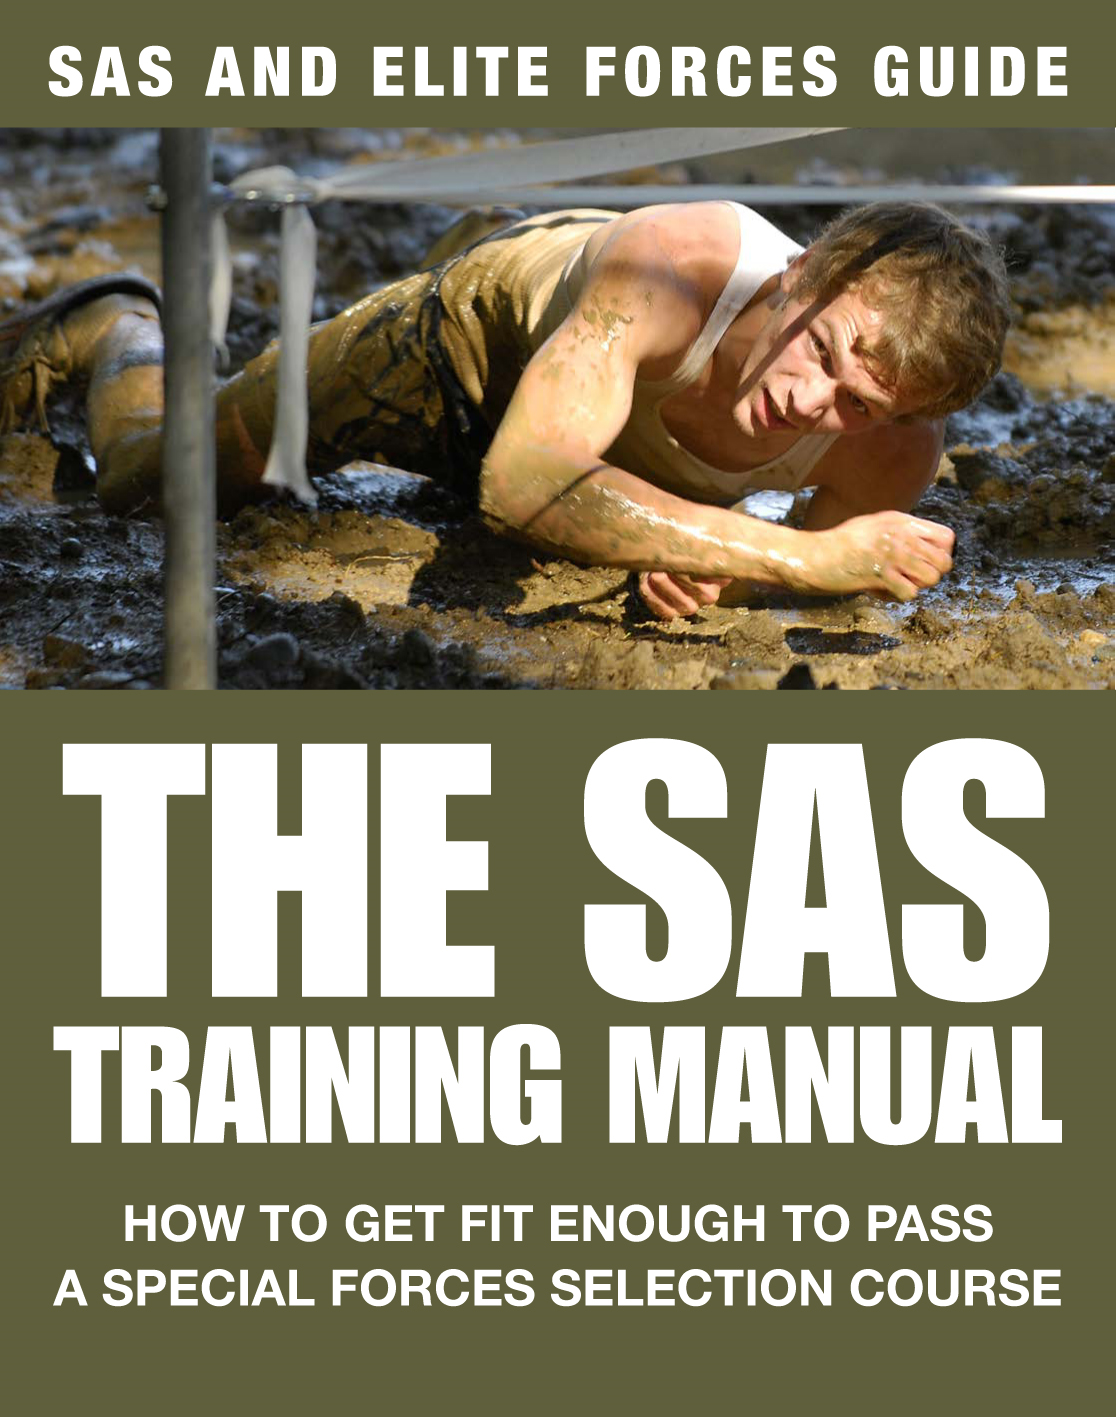 SAS Training Manual How to Get Fit Enough to Pass a Special Forces Selection Course